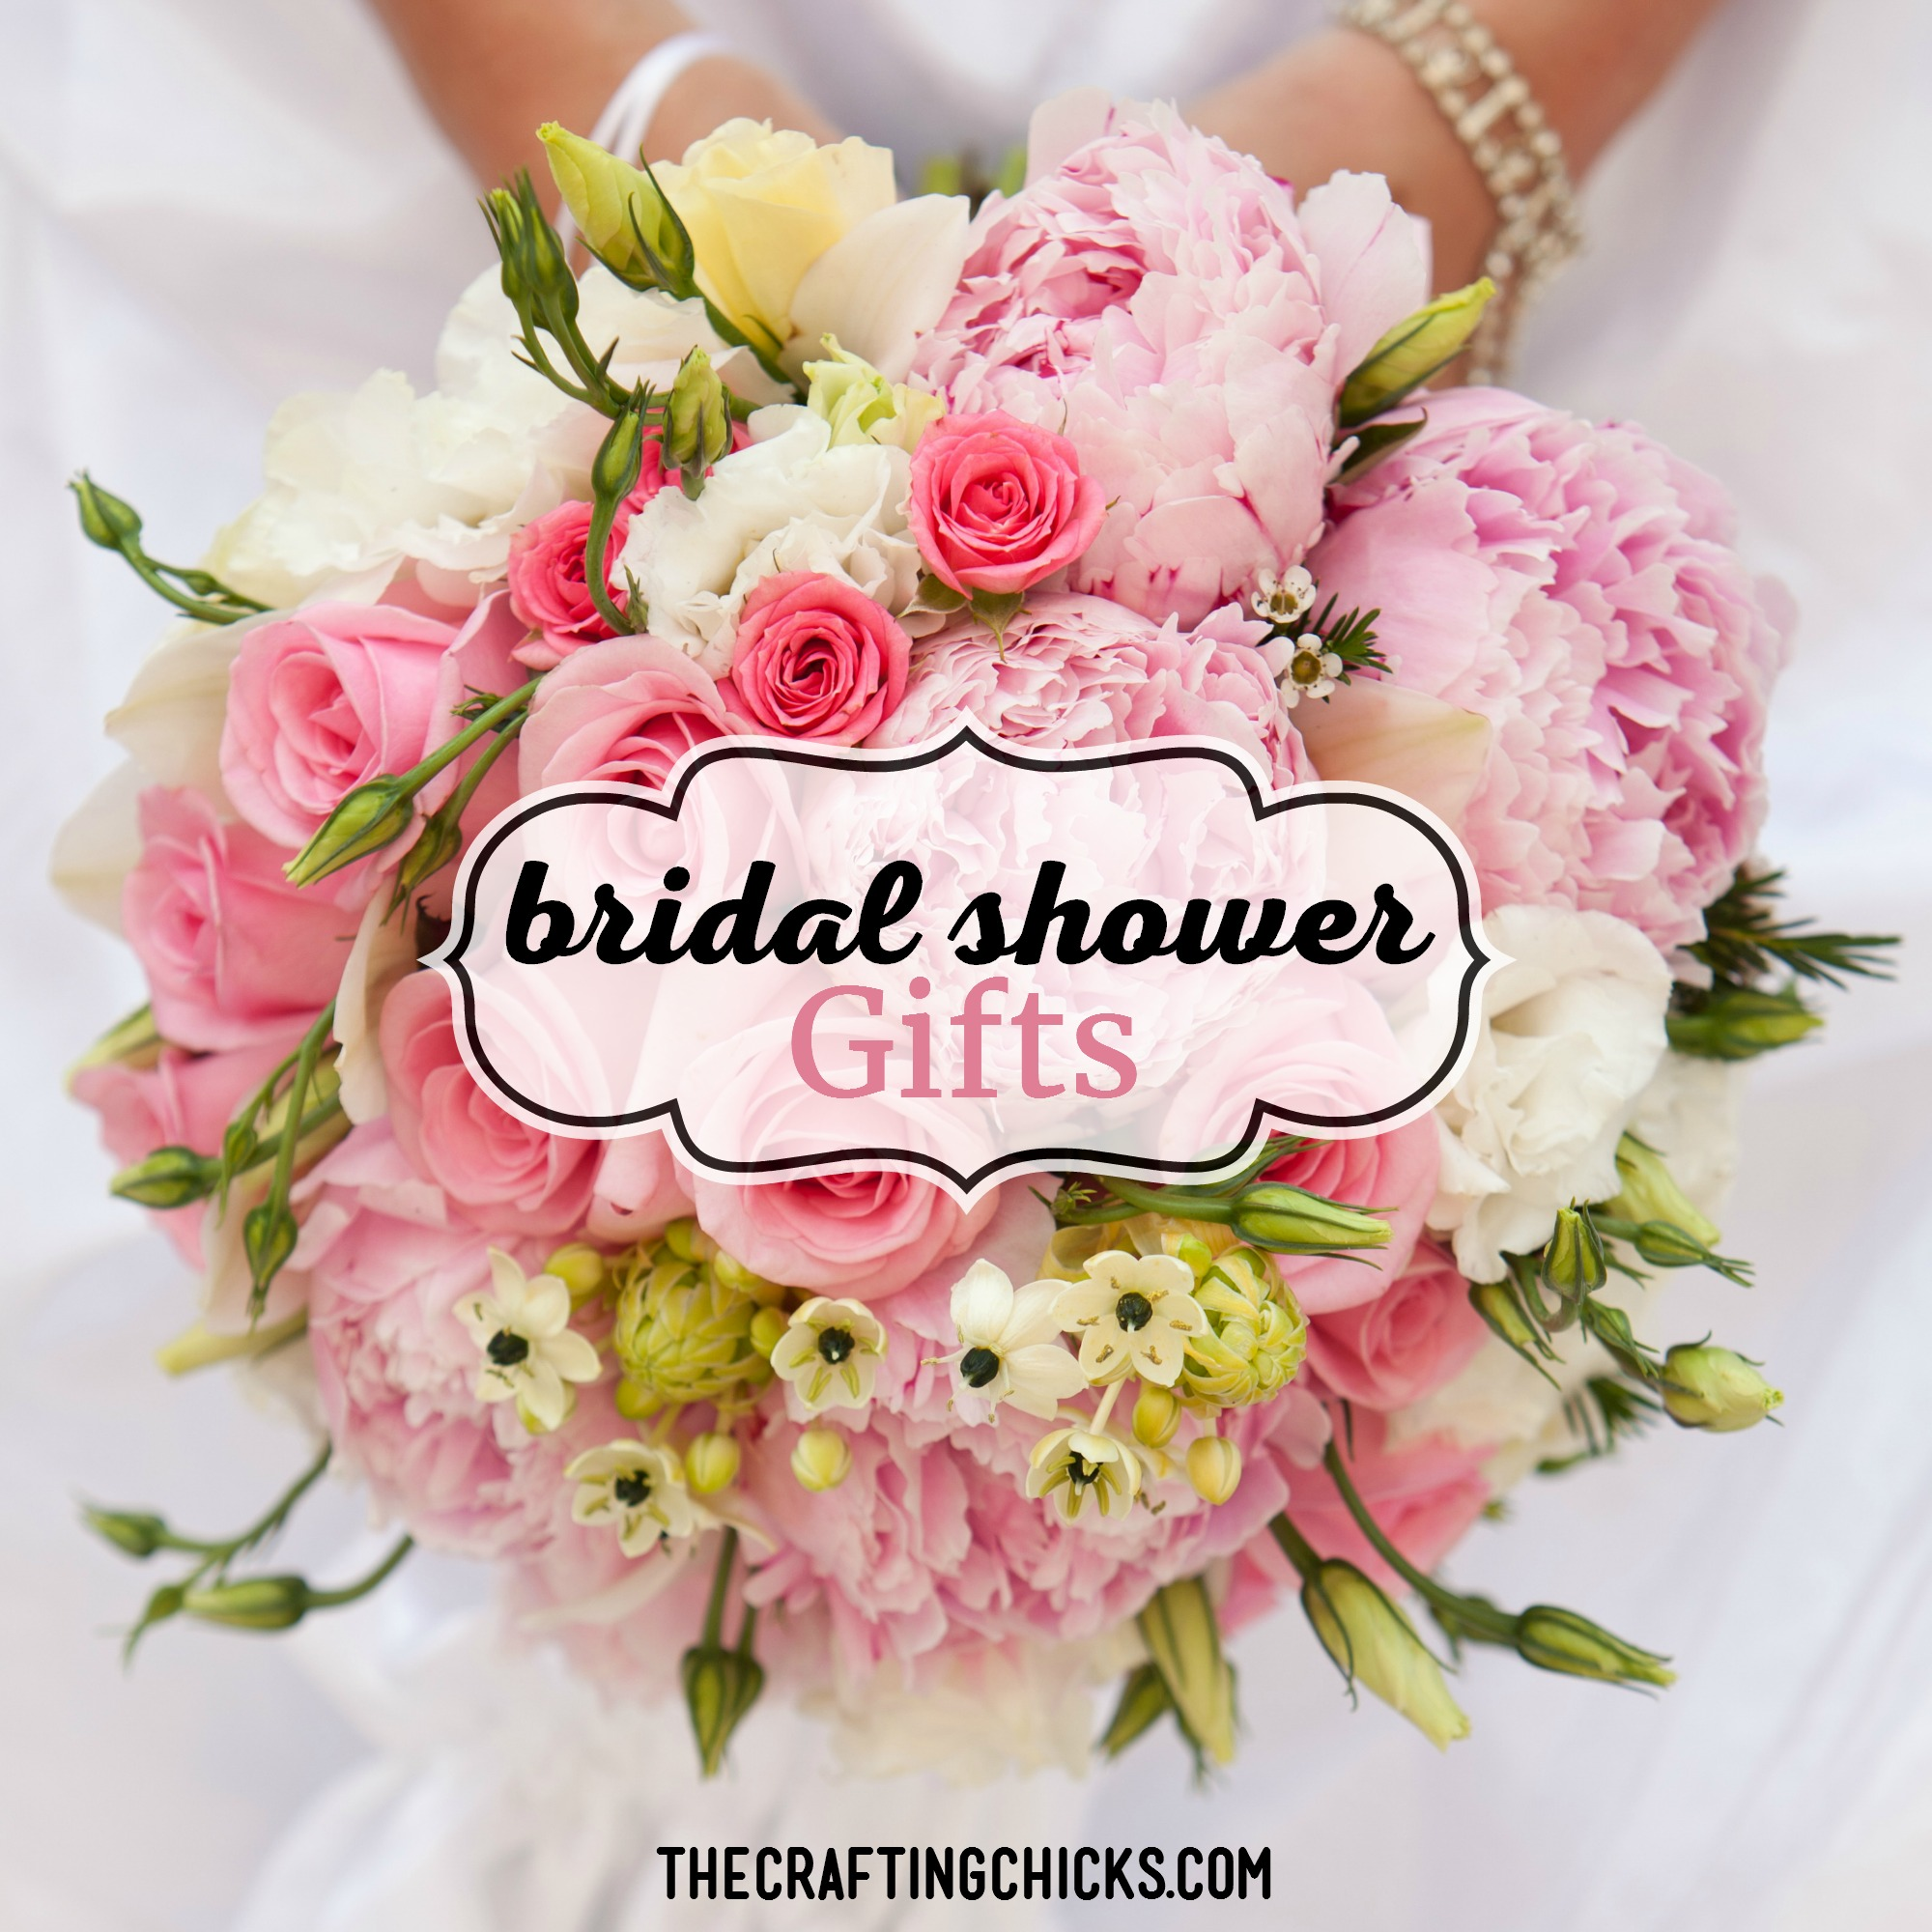 gifts gallery chic bridal ideas inspiration photo graphic pr gift for diy wedding weddings with website shower